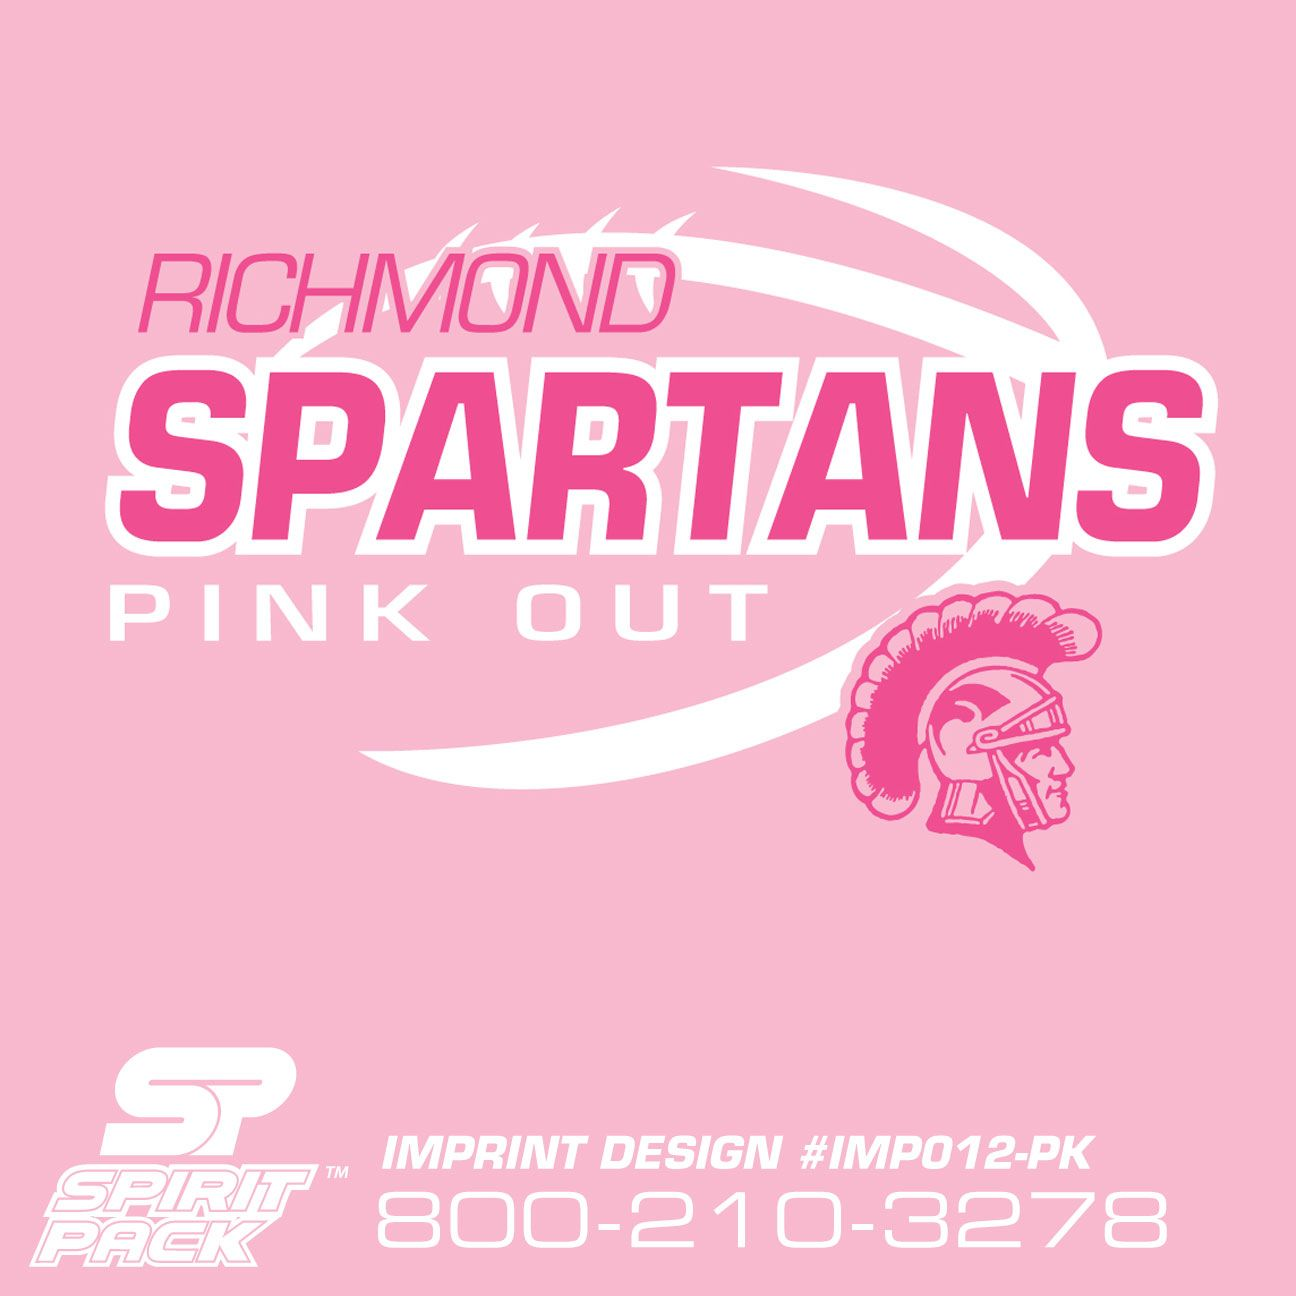 New Pink Out Shirt Designs! Make it Yours at www.spiritpack.com ...